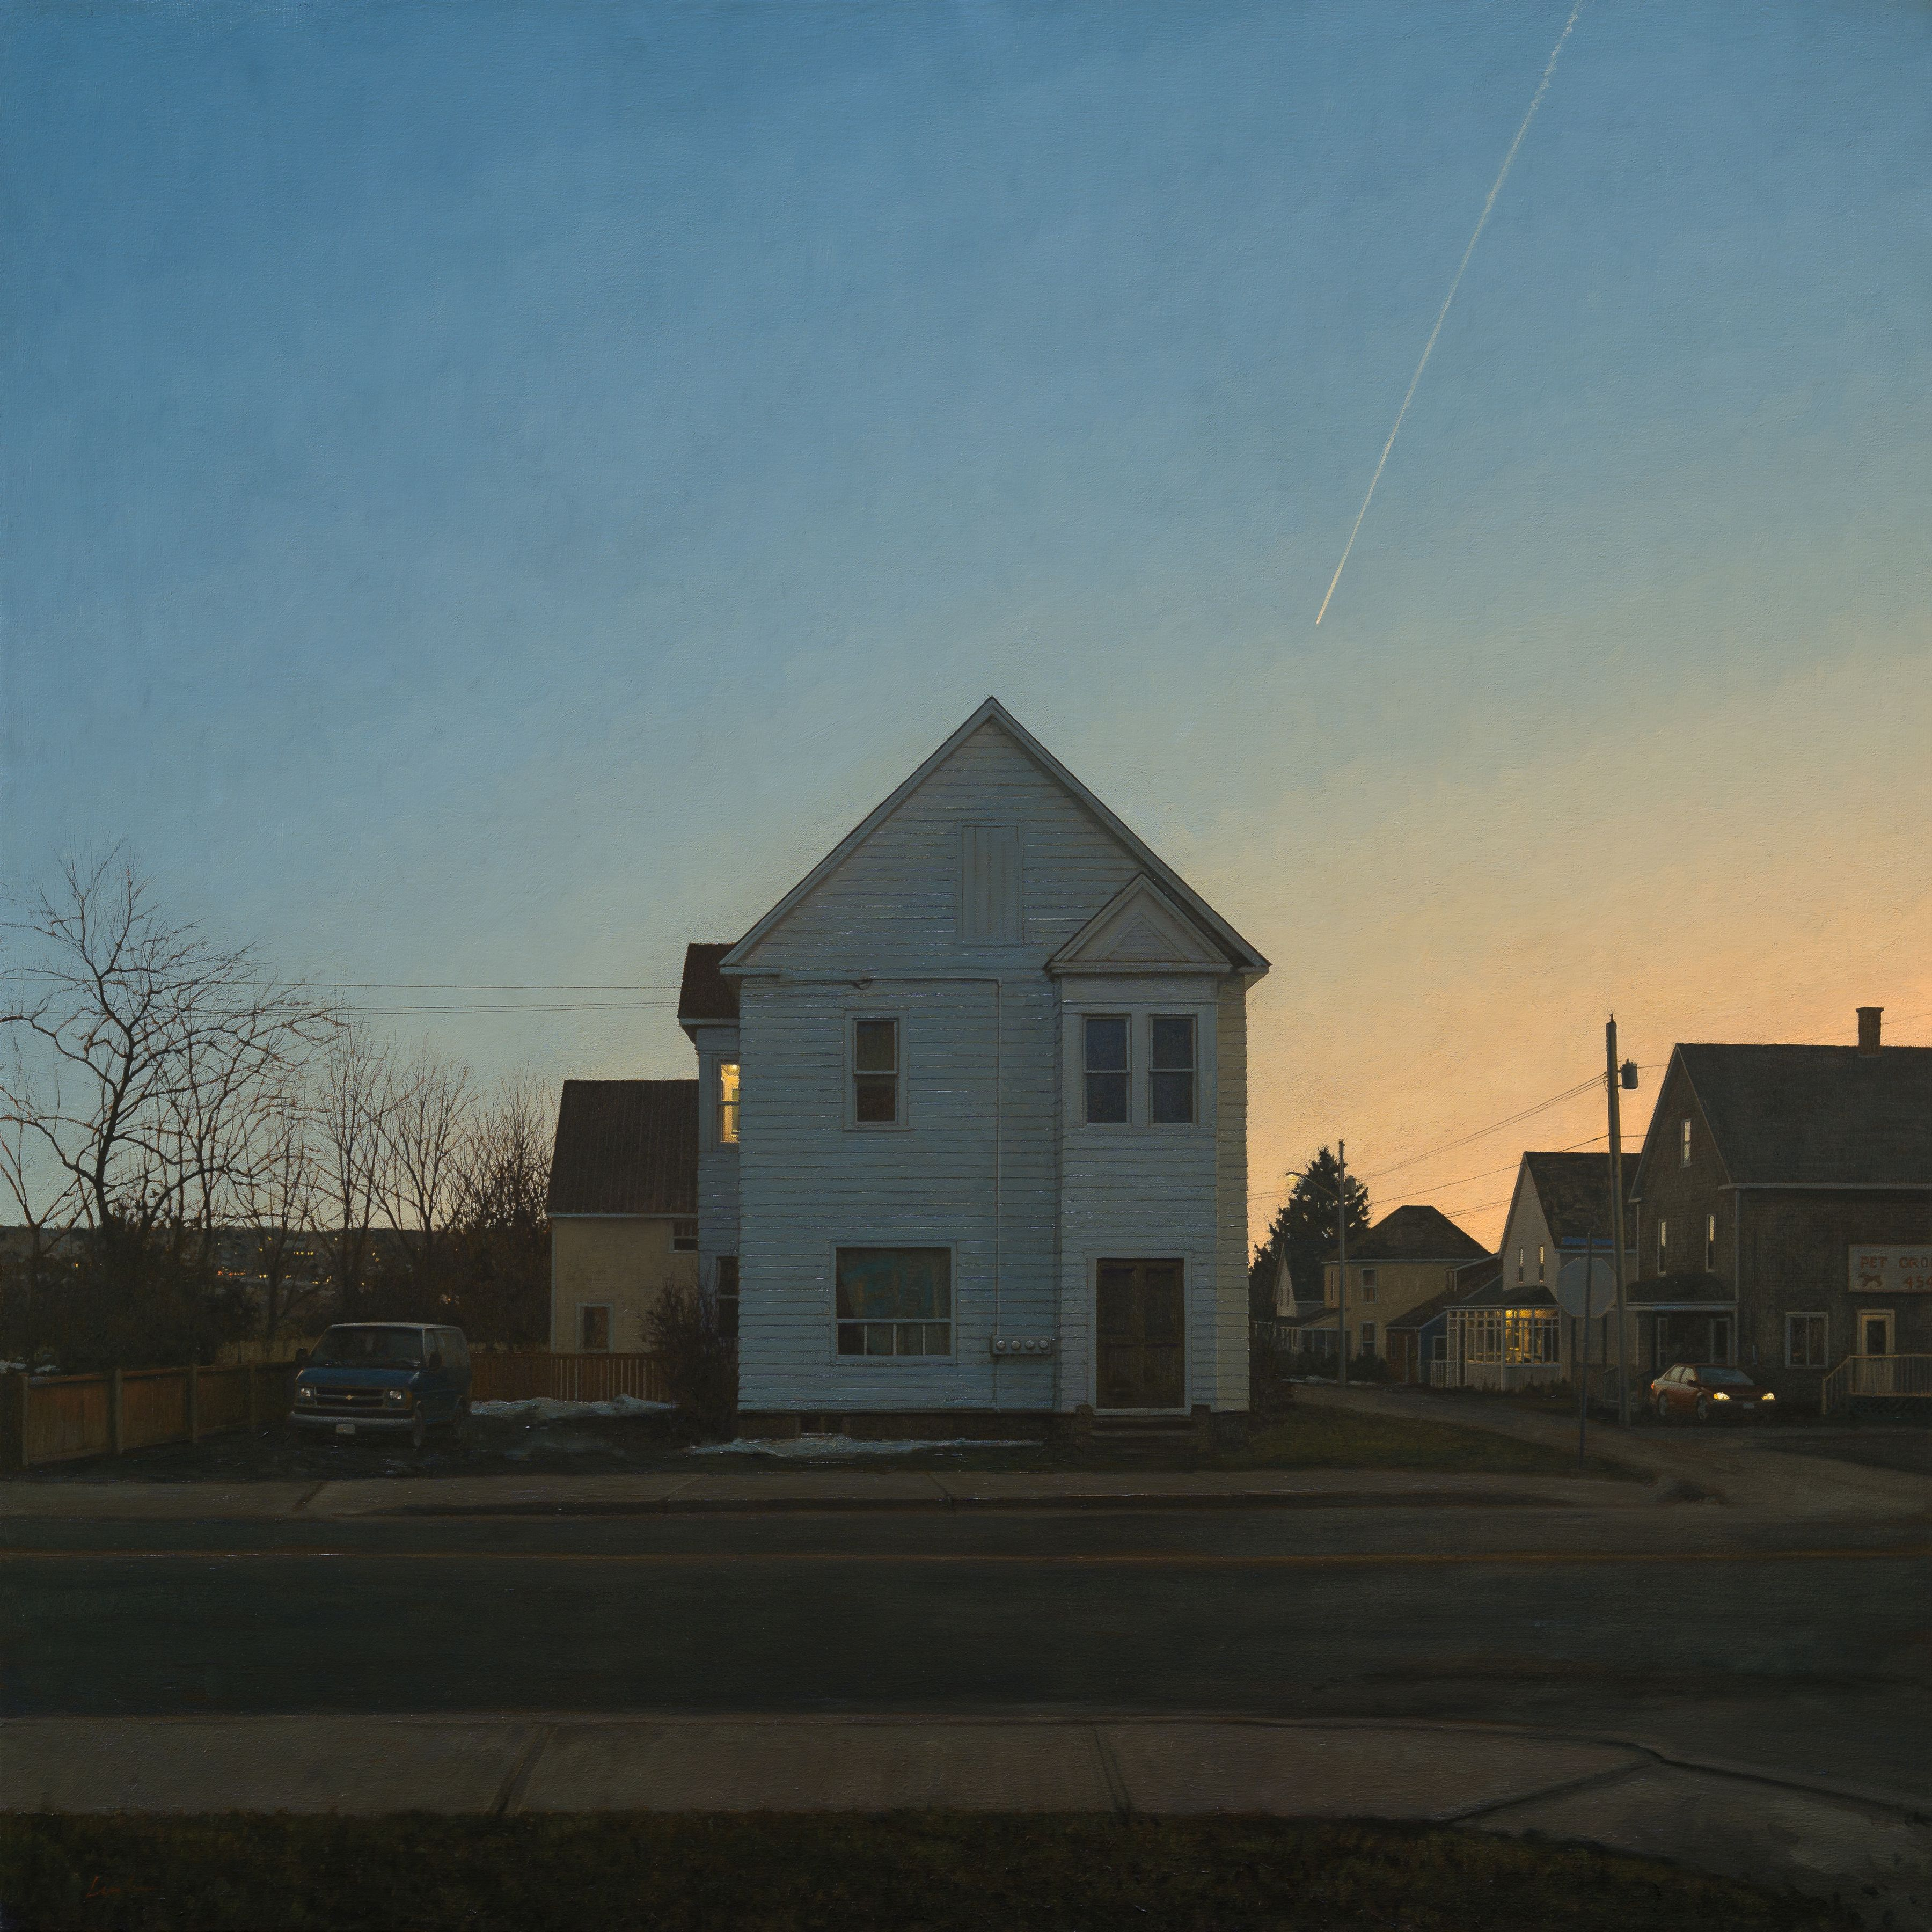 linden frederick, Tenant (SOLD), 2013, oil on linen, 55 x 55 inches